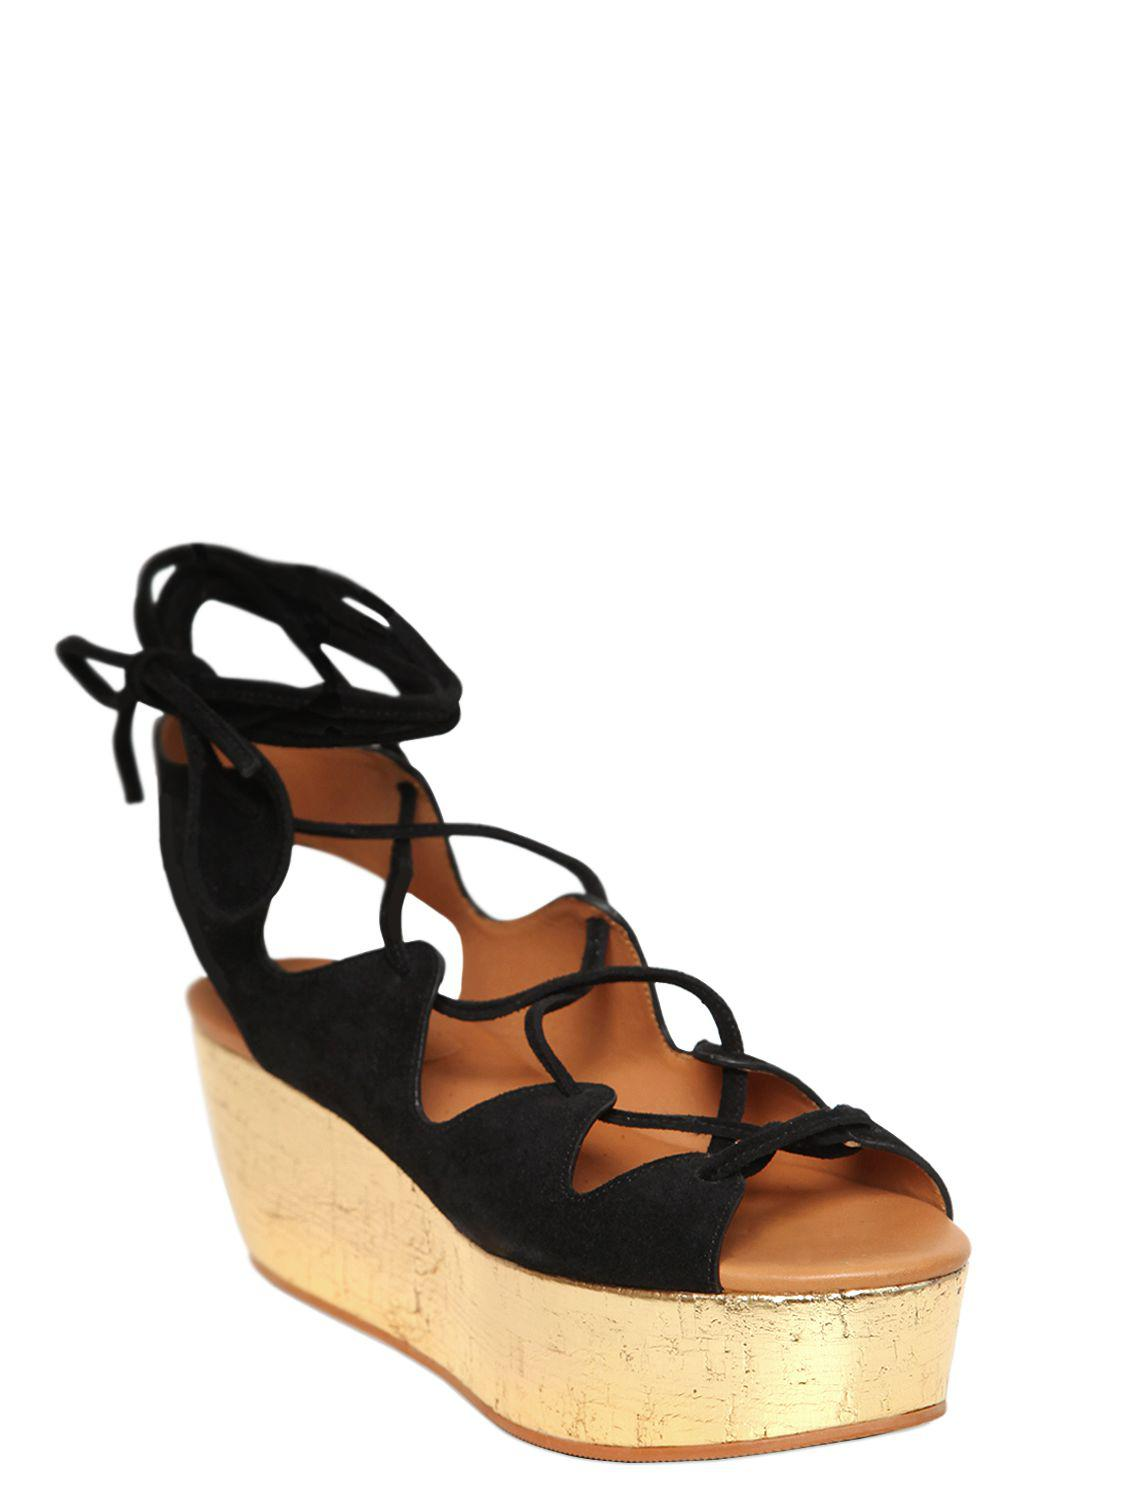 bdcf1daaf933 See By Chloé 70mm Suede Lace-up Wedges in Black - Lyst